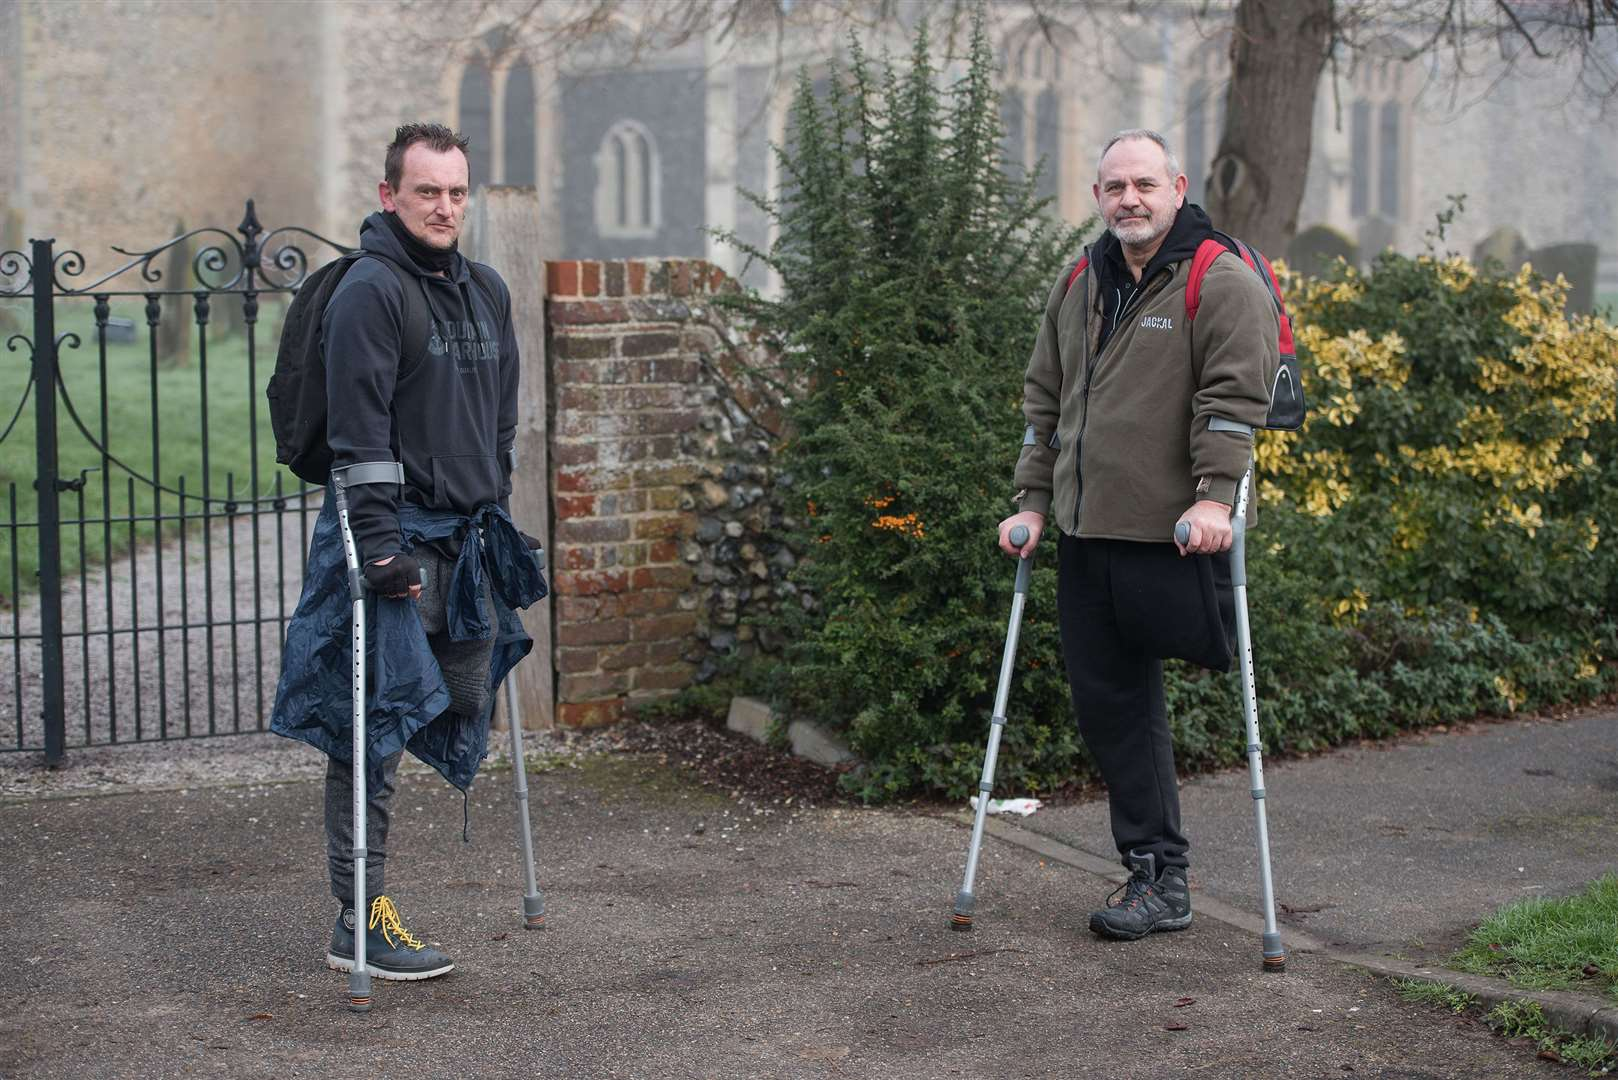 Best friends Paul Clark and Marc Pitman have set a 700 mile virtual walking challenge involving some of the world's most well-known places to raise money for the mental health charity, Mind. Picture by Mark Westley